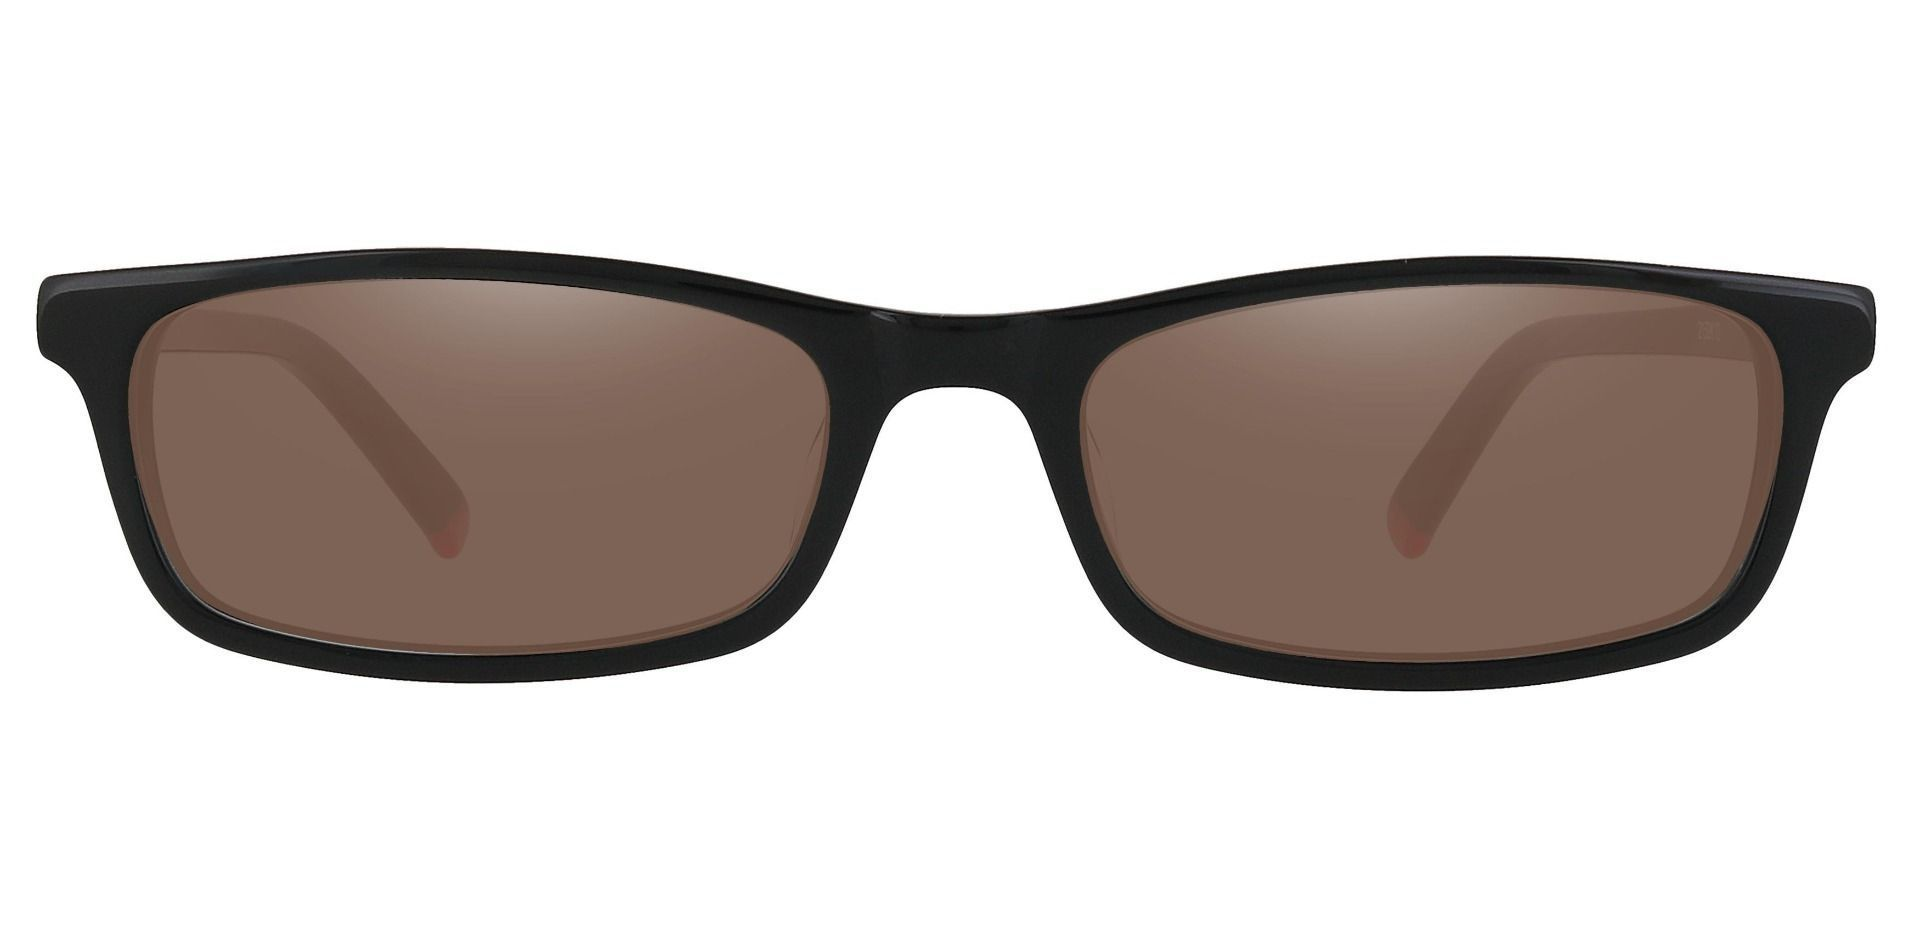 Palisades Rectangle Reading Sunglasses - Black Frame With Brown Lenses